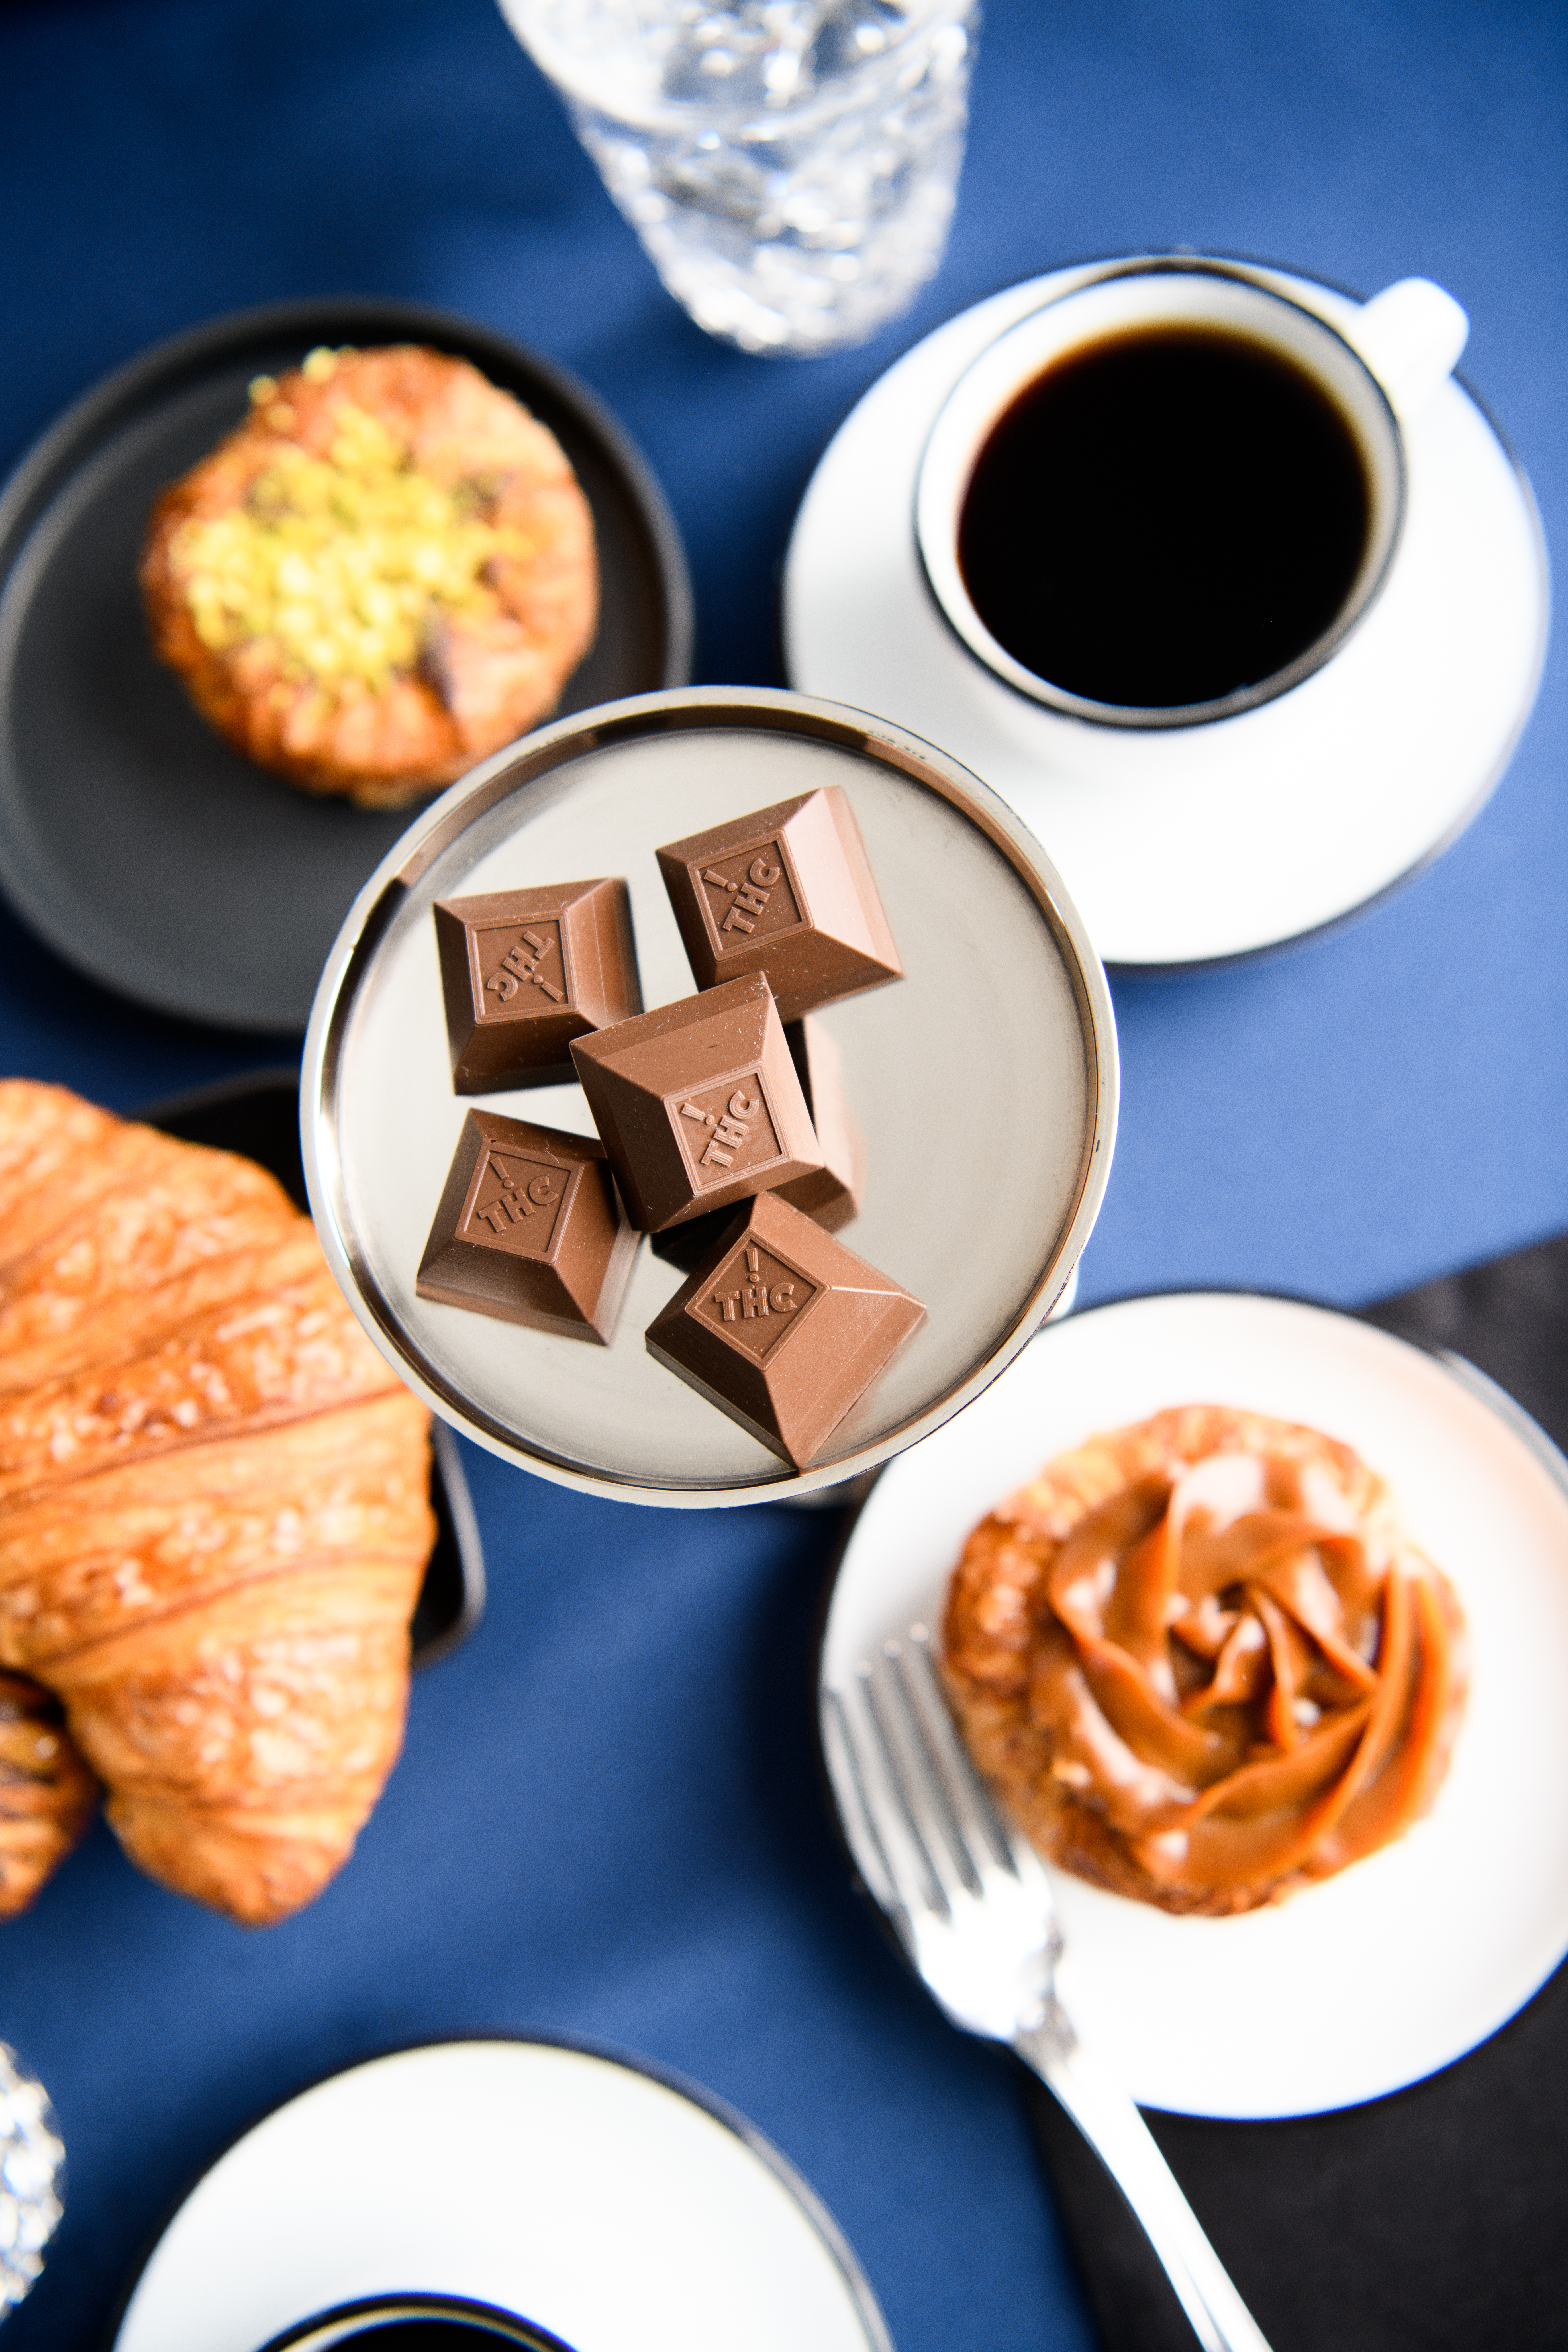 Nove cannabis-infused luxury chocolates pedestaled on a silver tray with other delicious pastries and coffees surrounding them. The blue tablecloth creates a stark contrast.